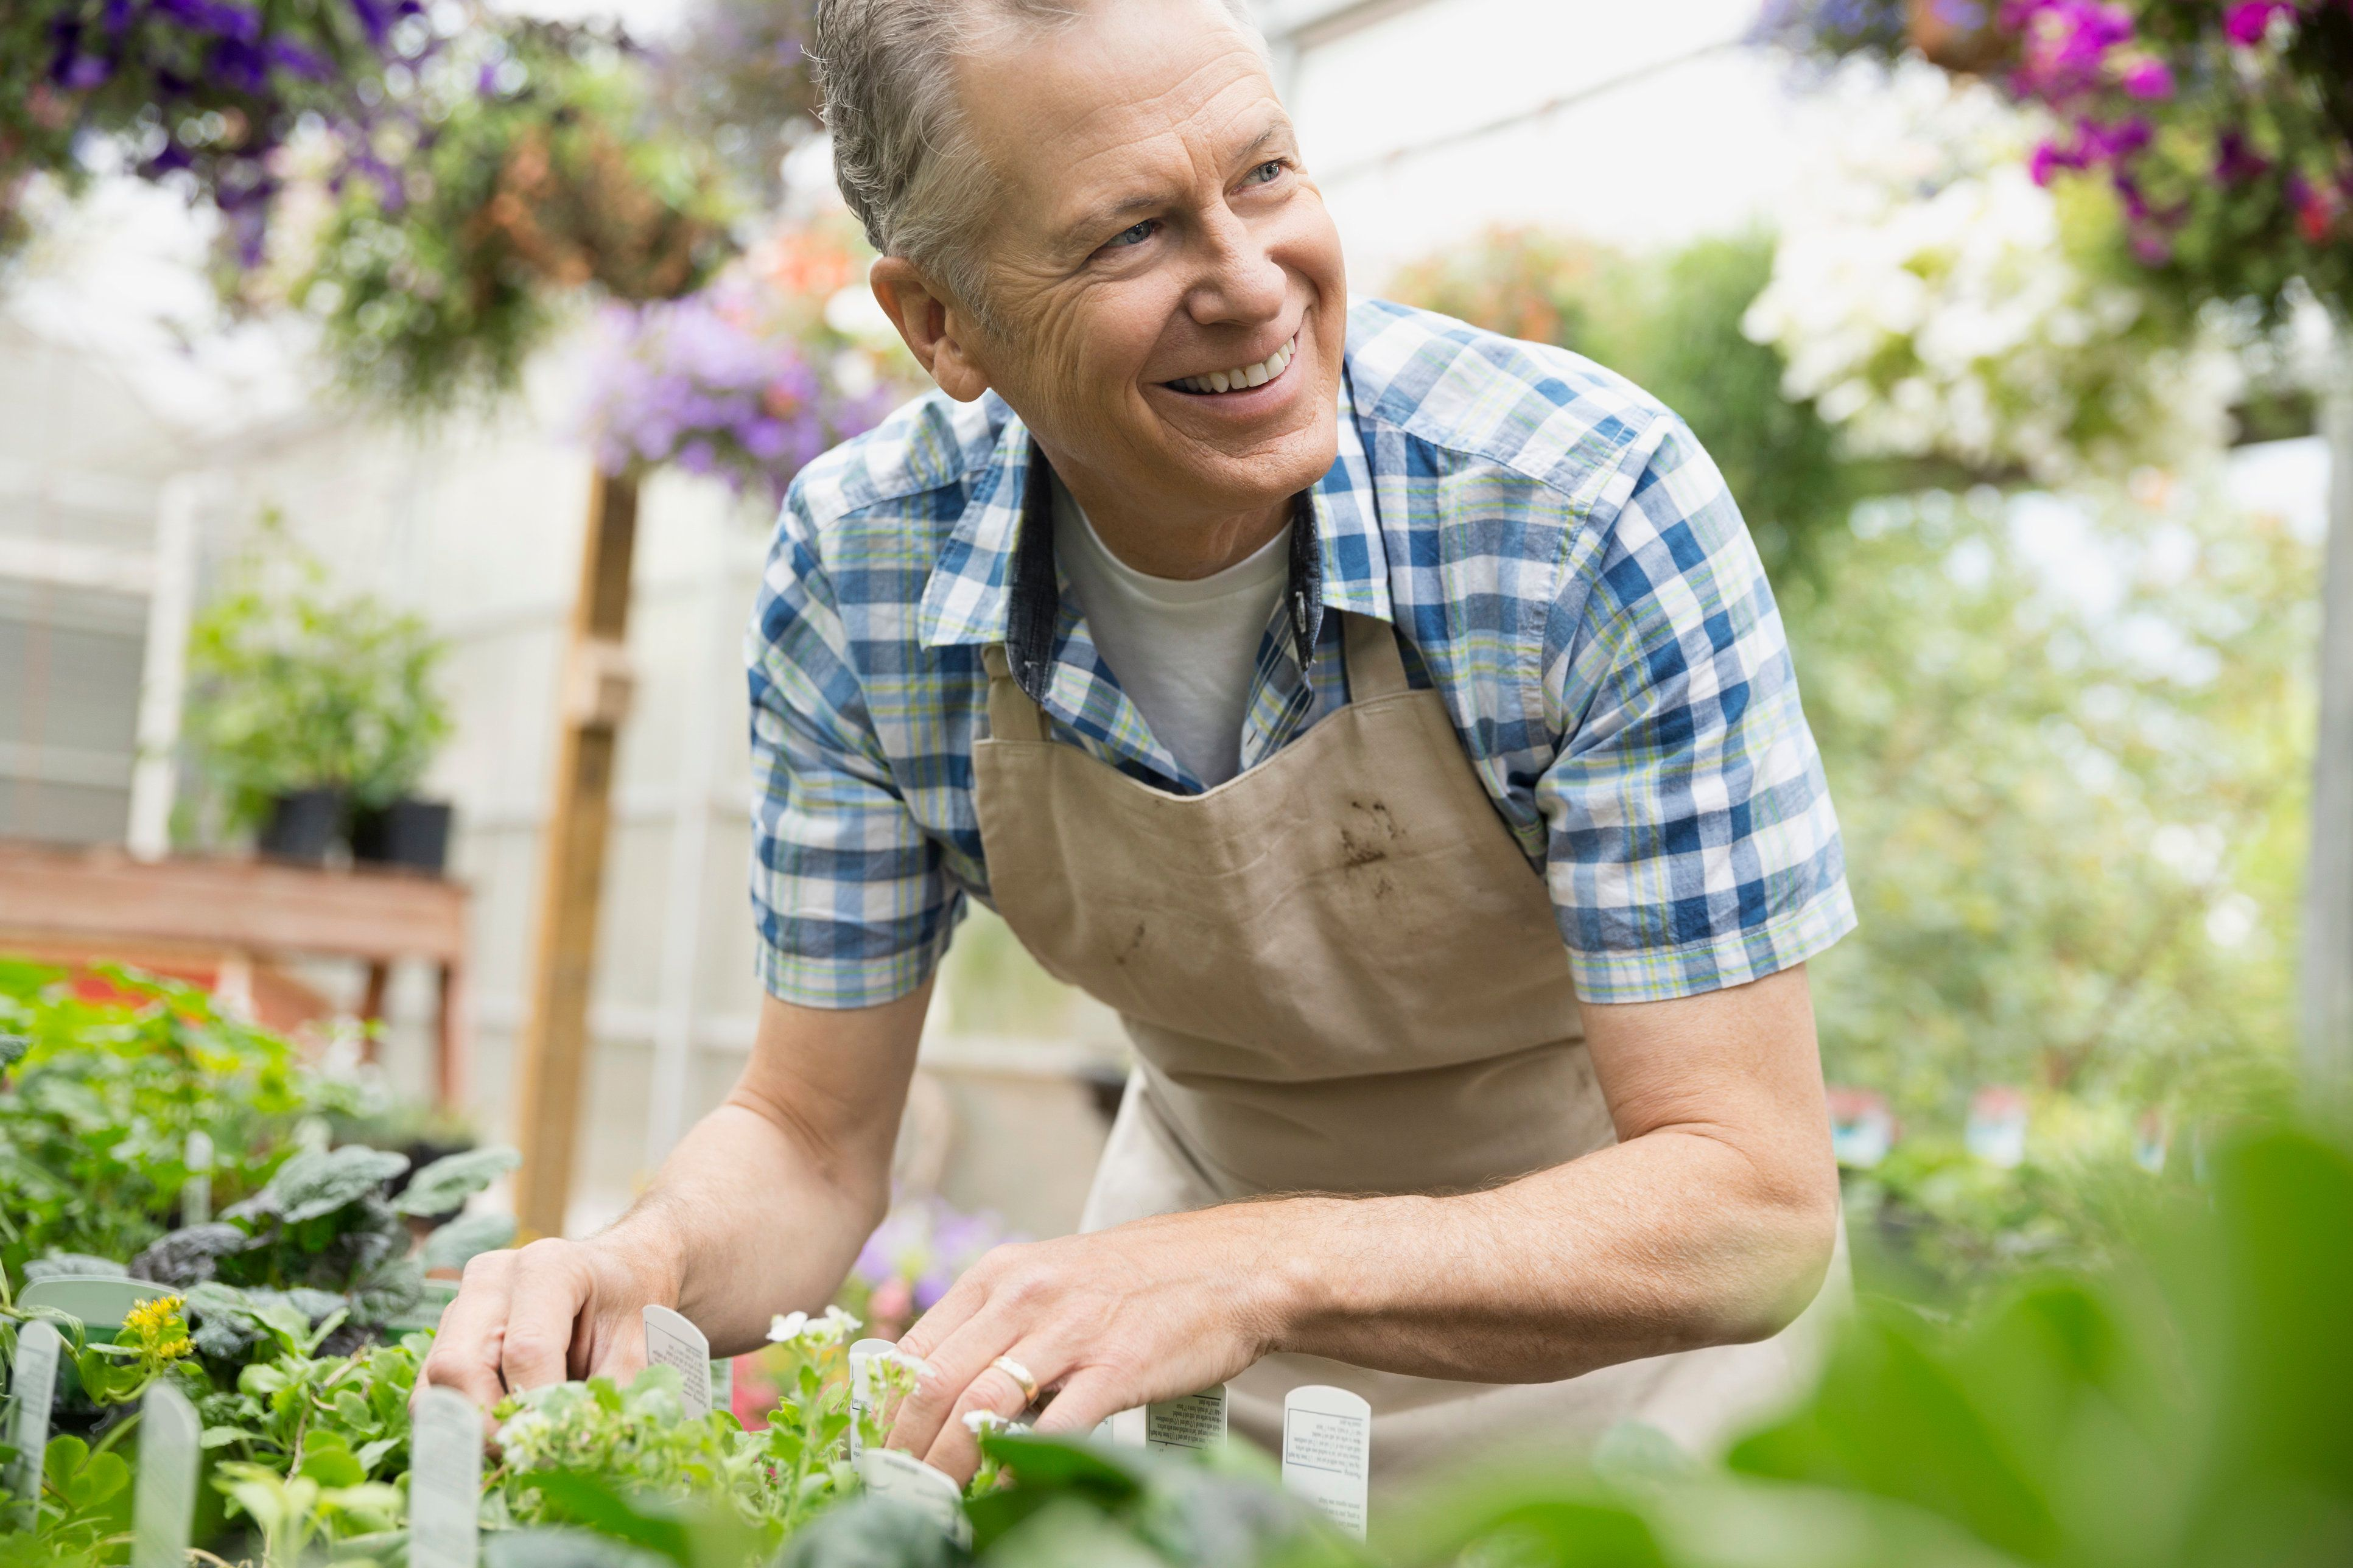 Smiling worker examining plant in plant nursery greenhouse